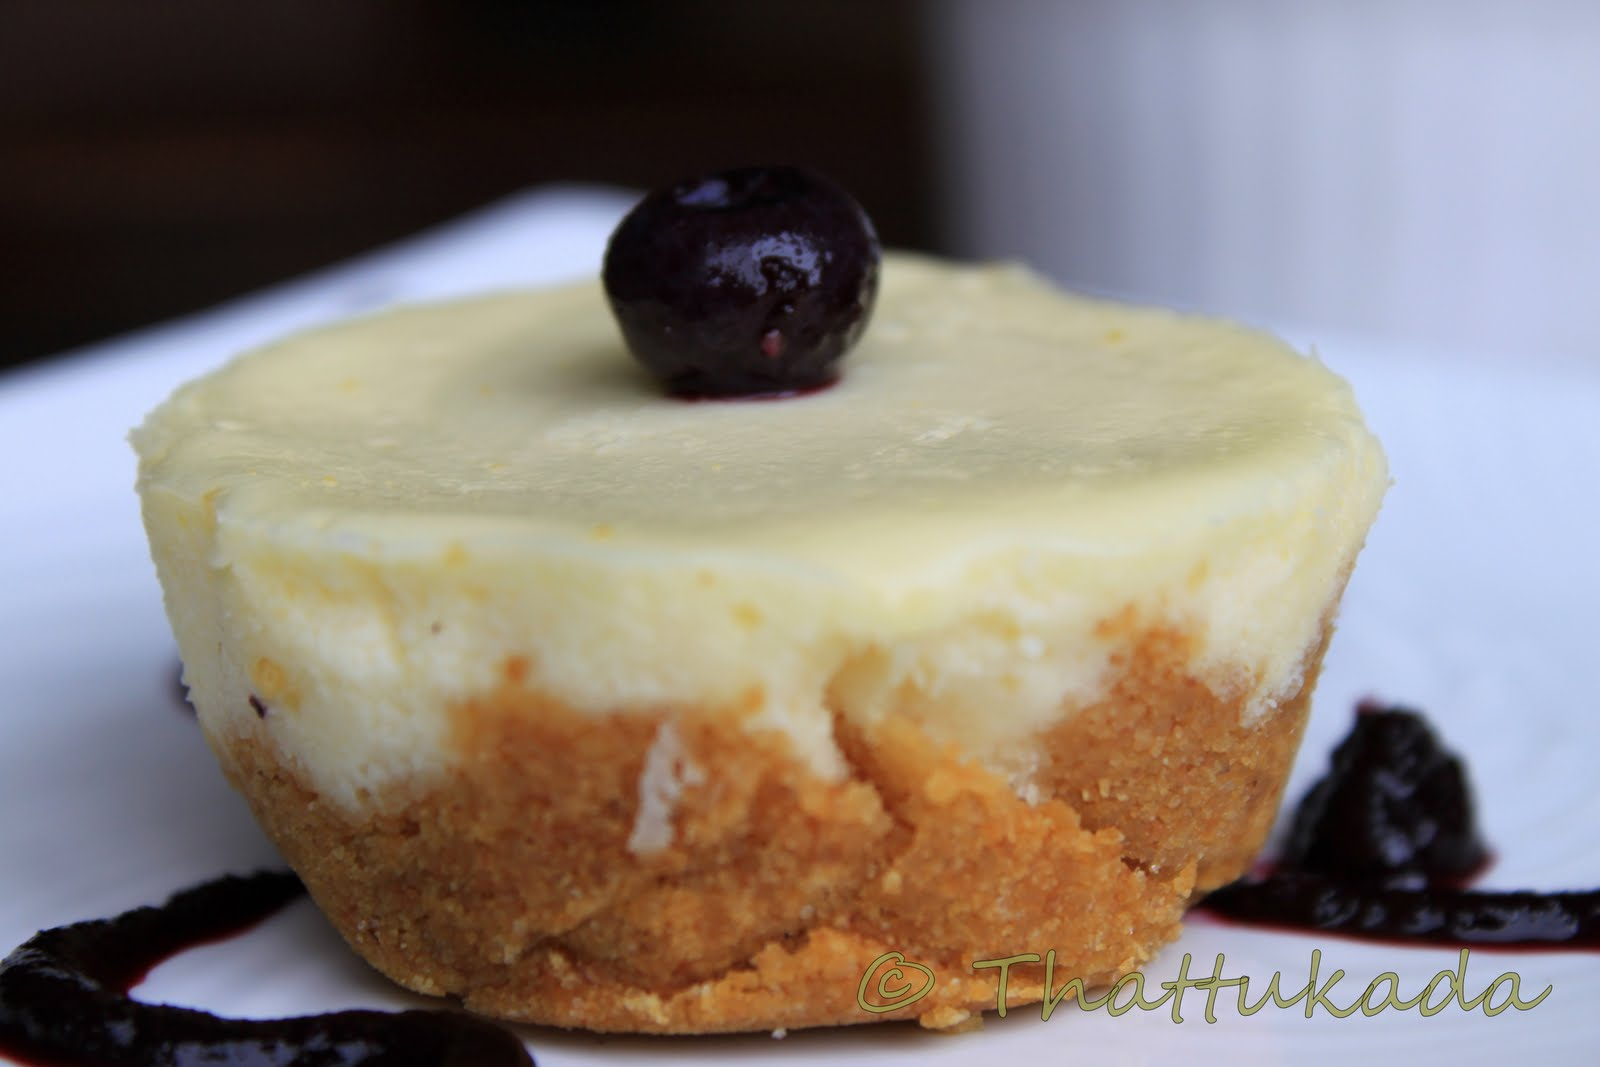 Mini Cheesecakes / Individual Cheesecake with Blueberry Sauce ...